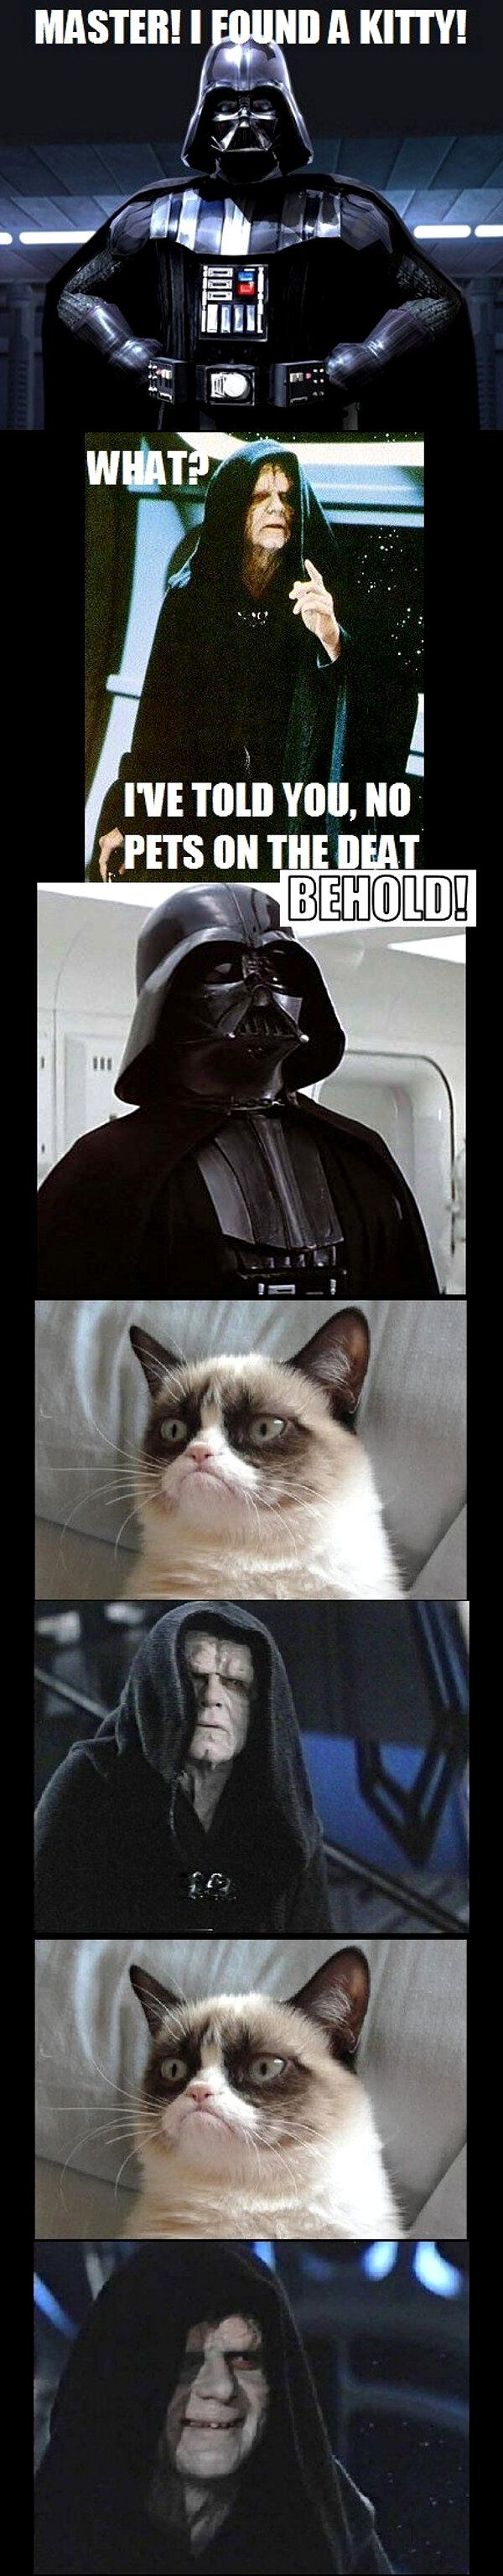 Grumpy Cat has joined the dark side